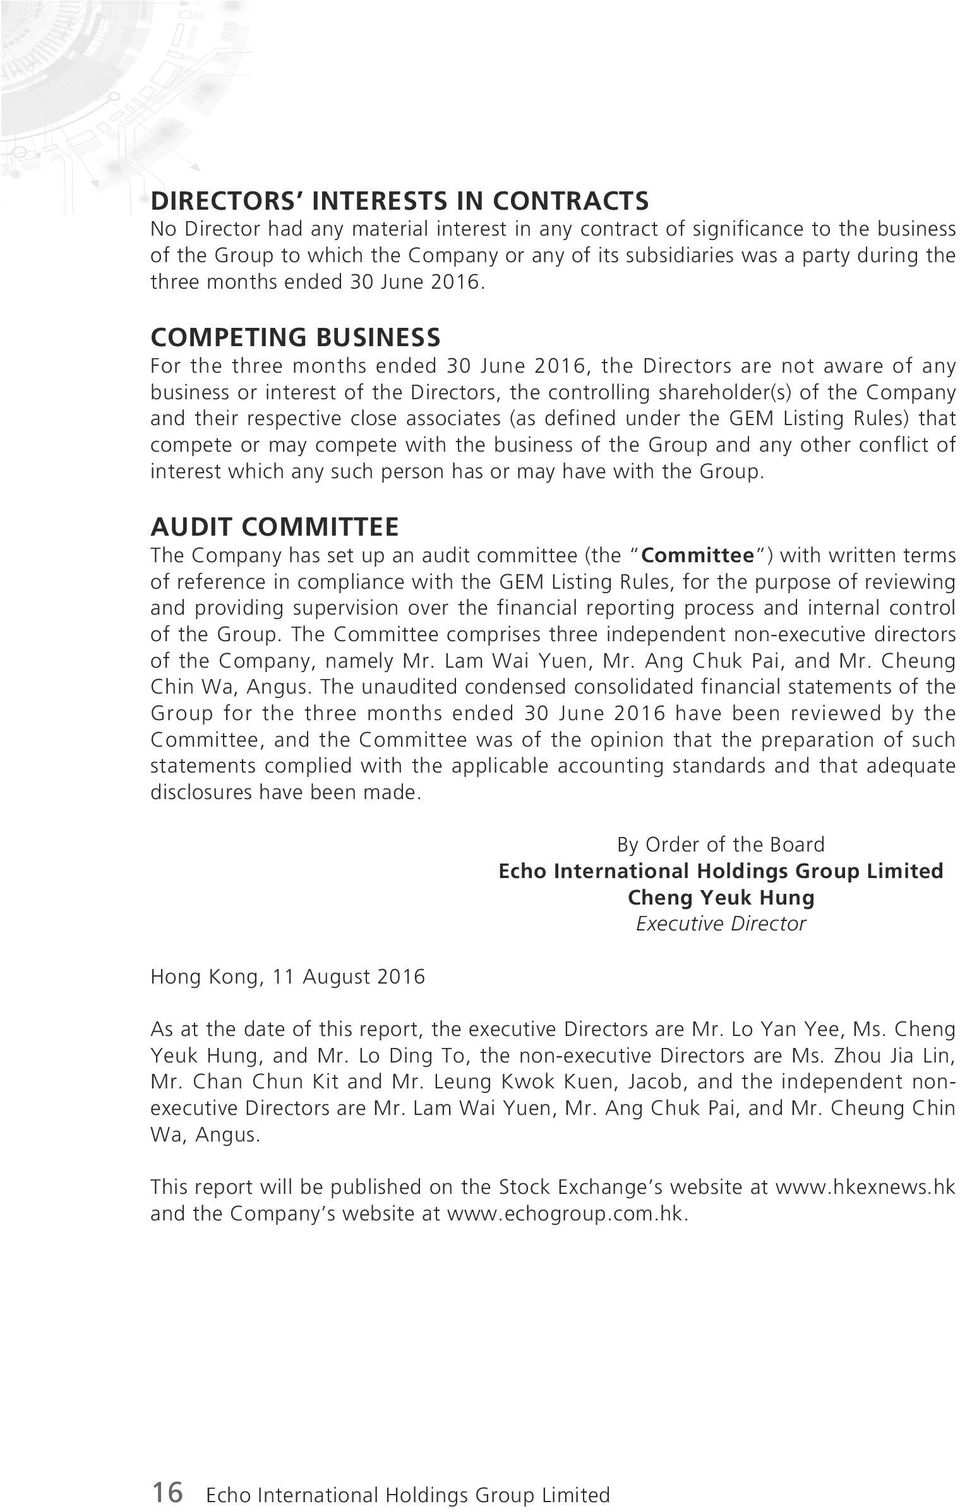 COMPETING BUSINESS For the three months ended 2016, the Directors are not aware of any business or interest of the Directors, the controlling shareholder(s) of the Company and their respective close